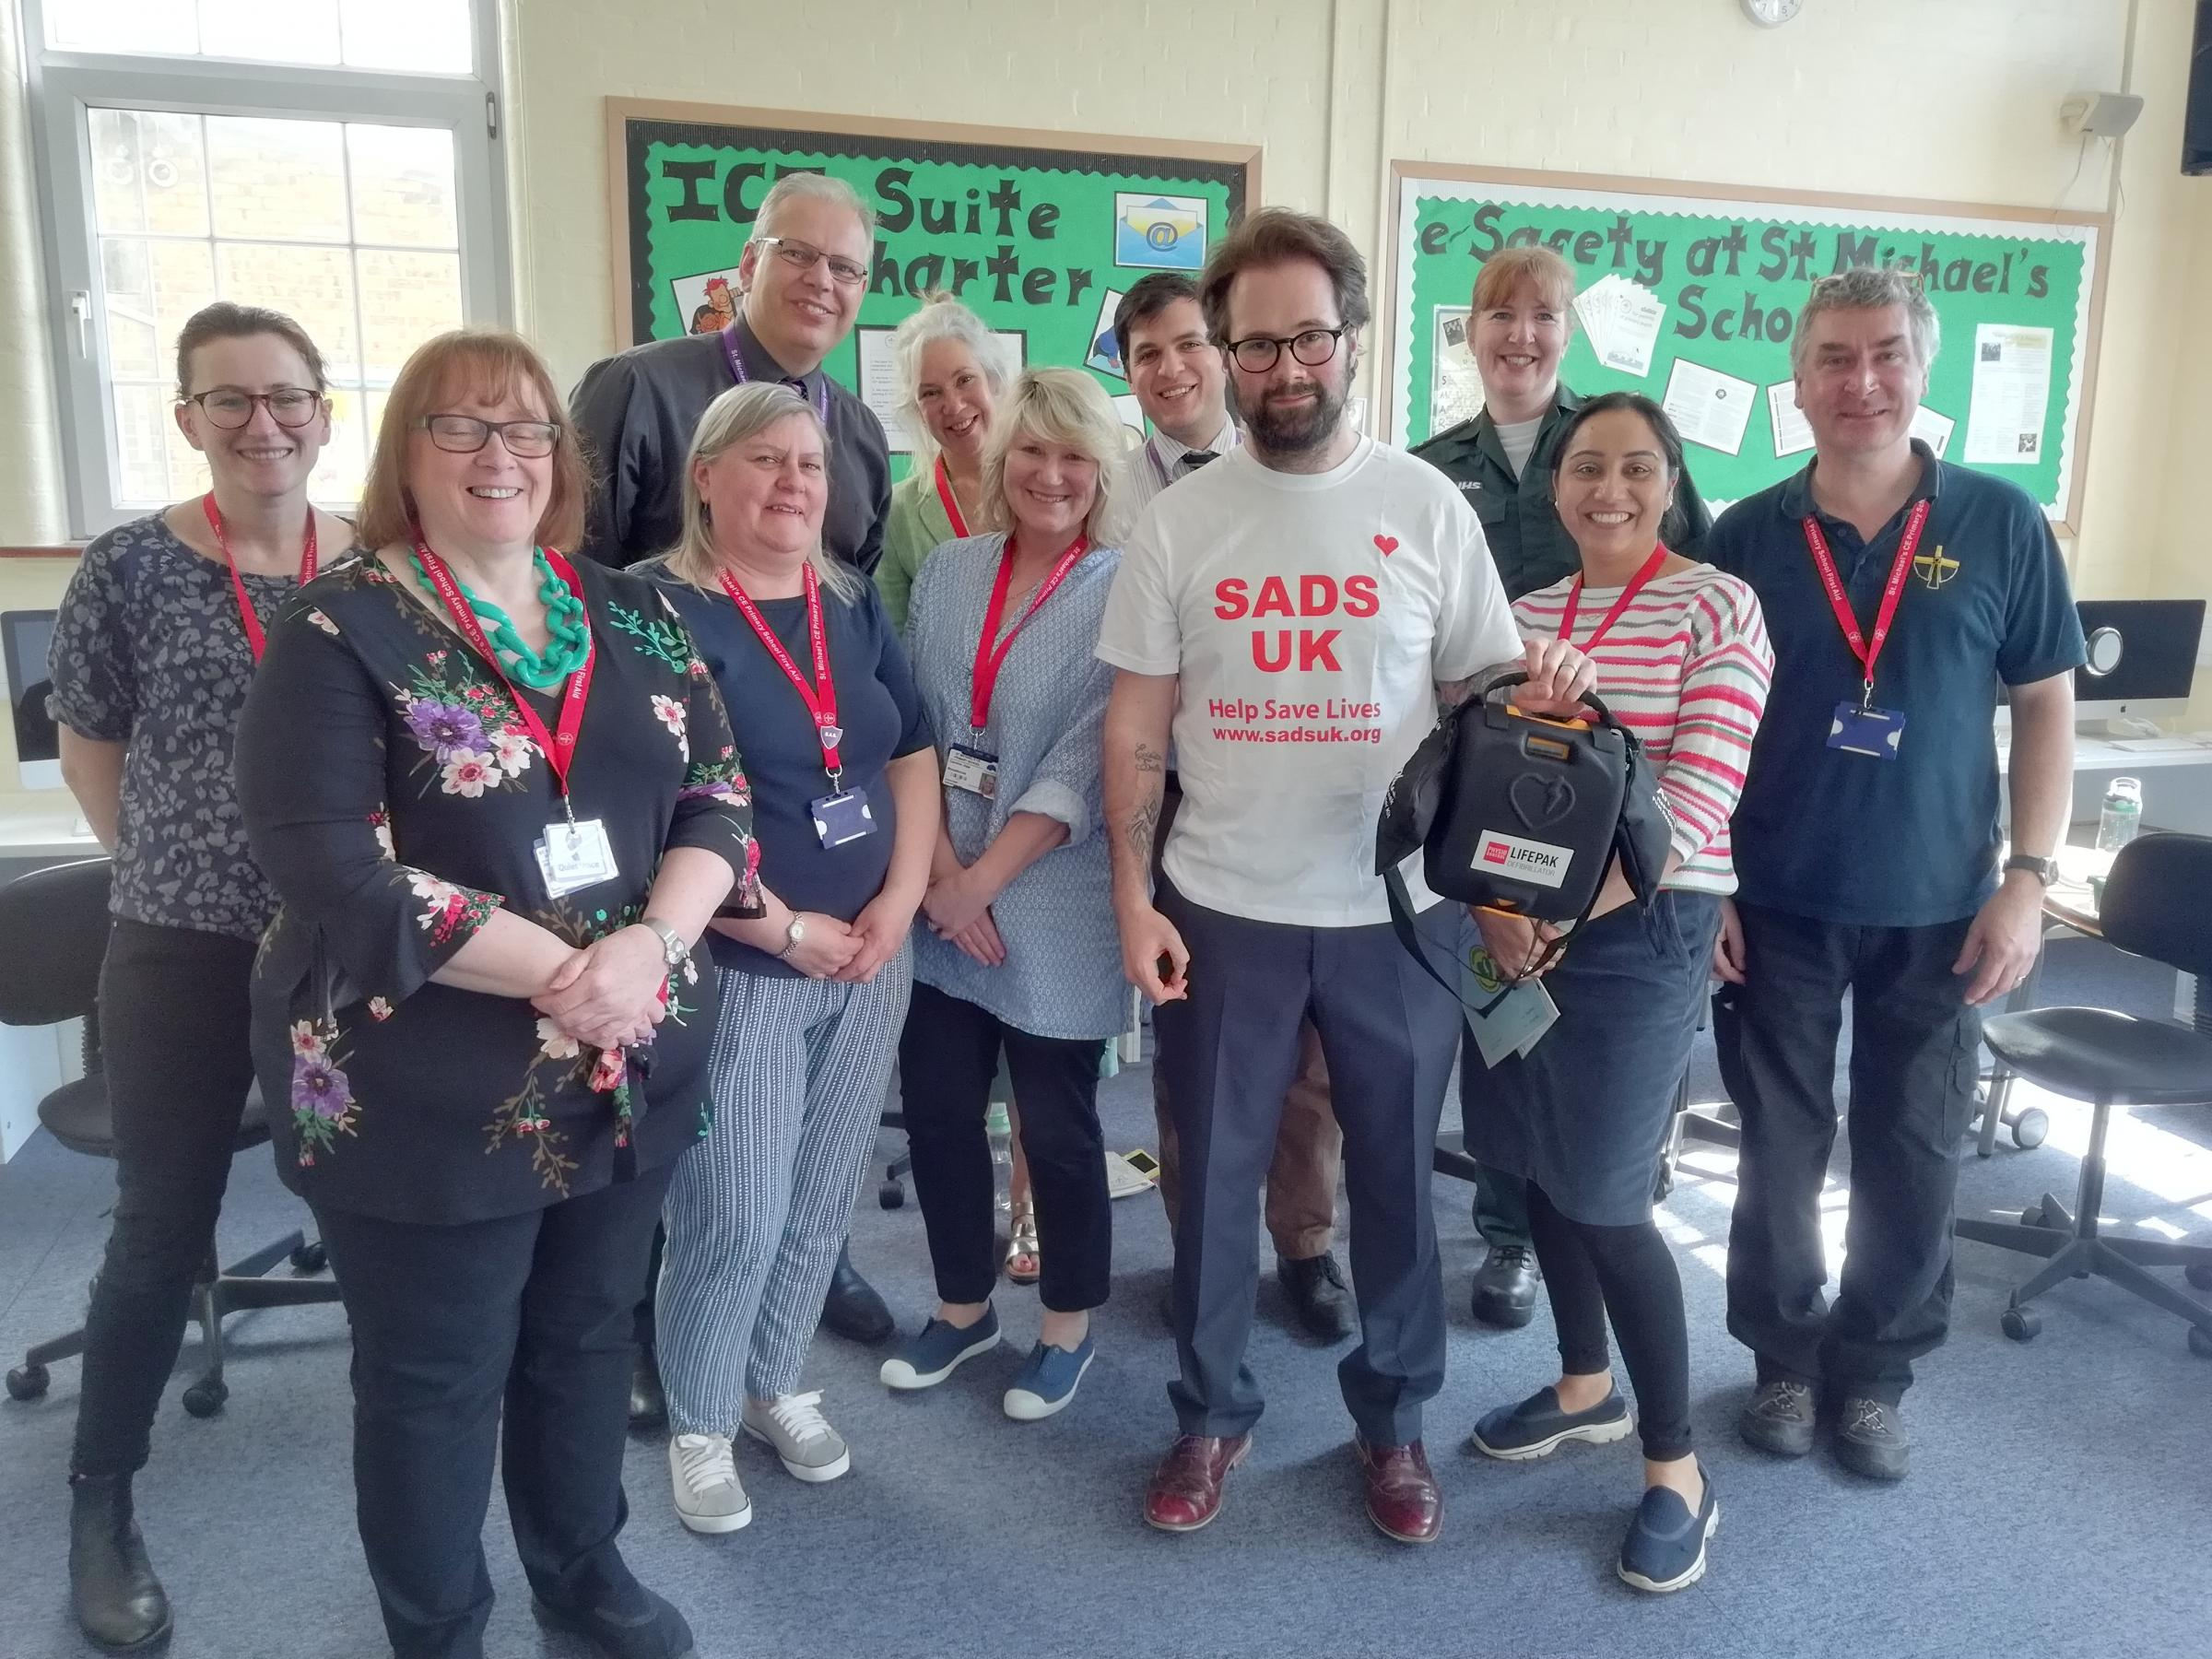 Defibrillator training took place at St Michael's CE Primary School on Wednesday, April 18